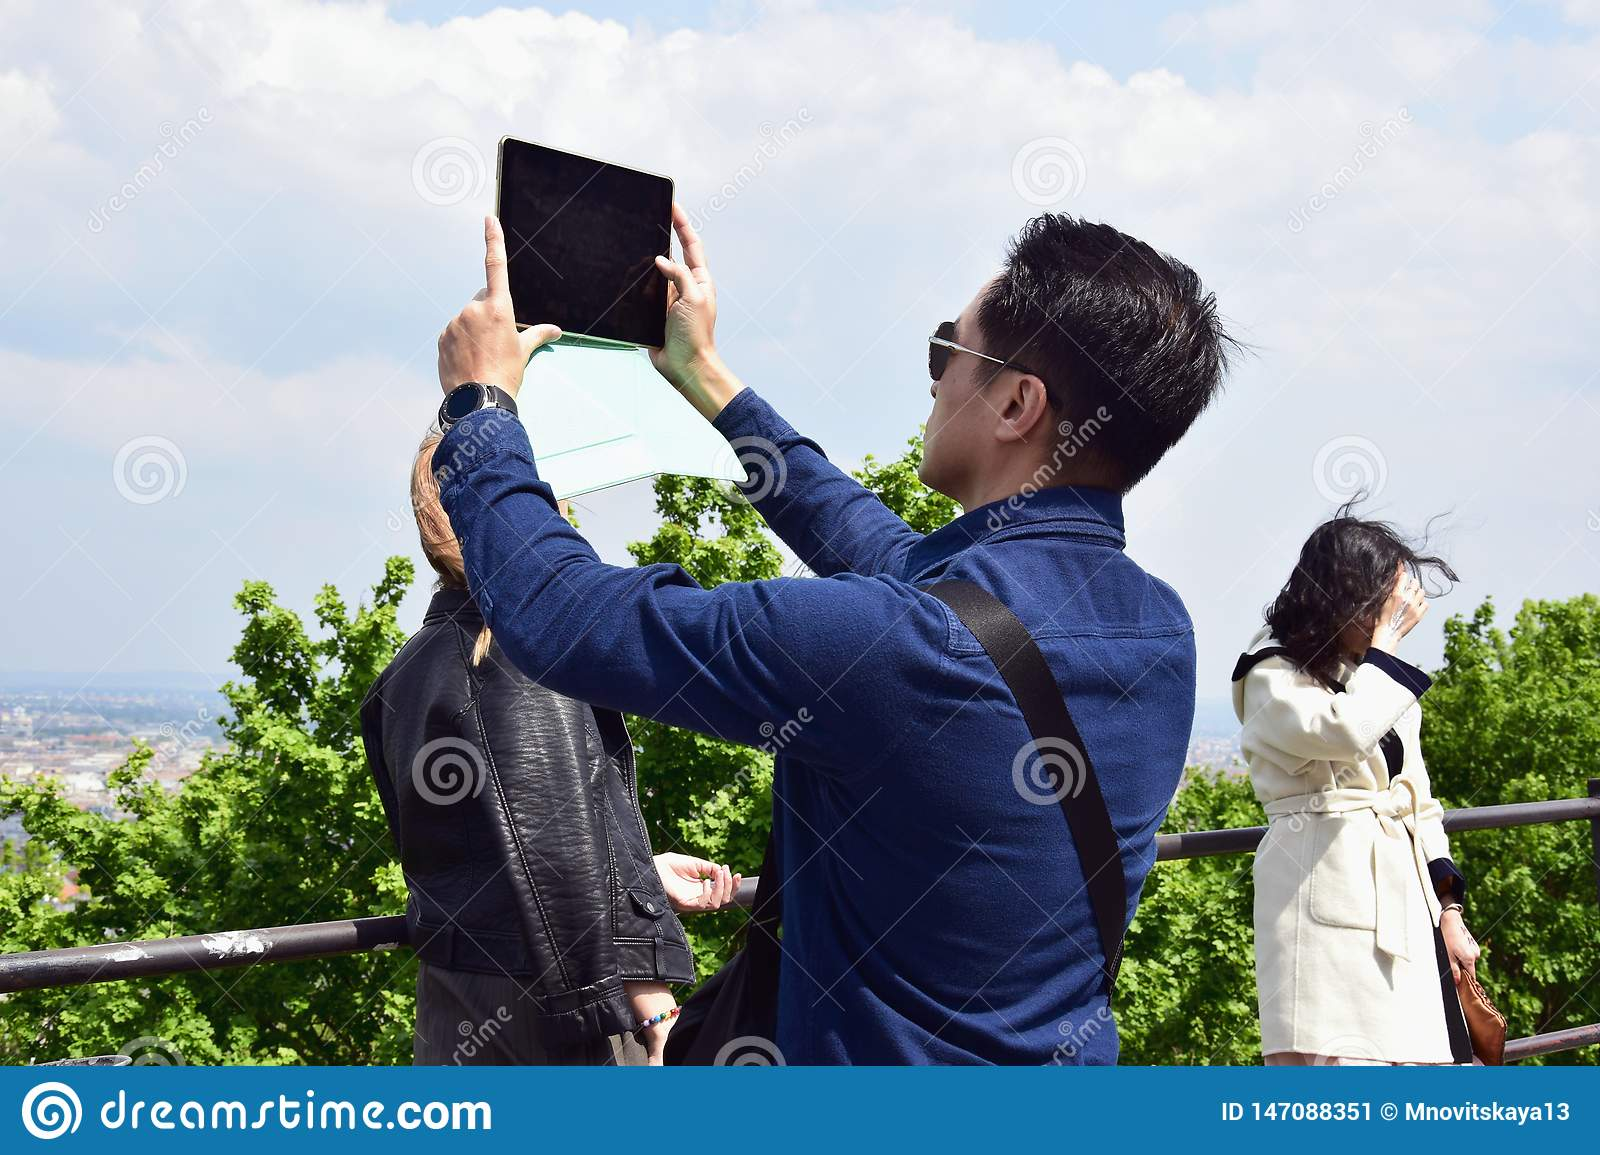 Young man takes a picture with a tablet of a picturesque view of the city